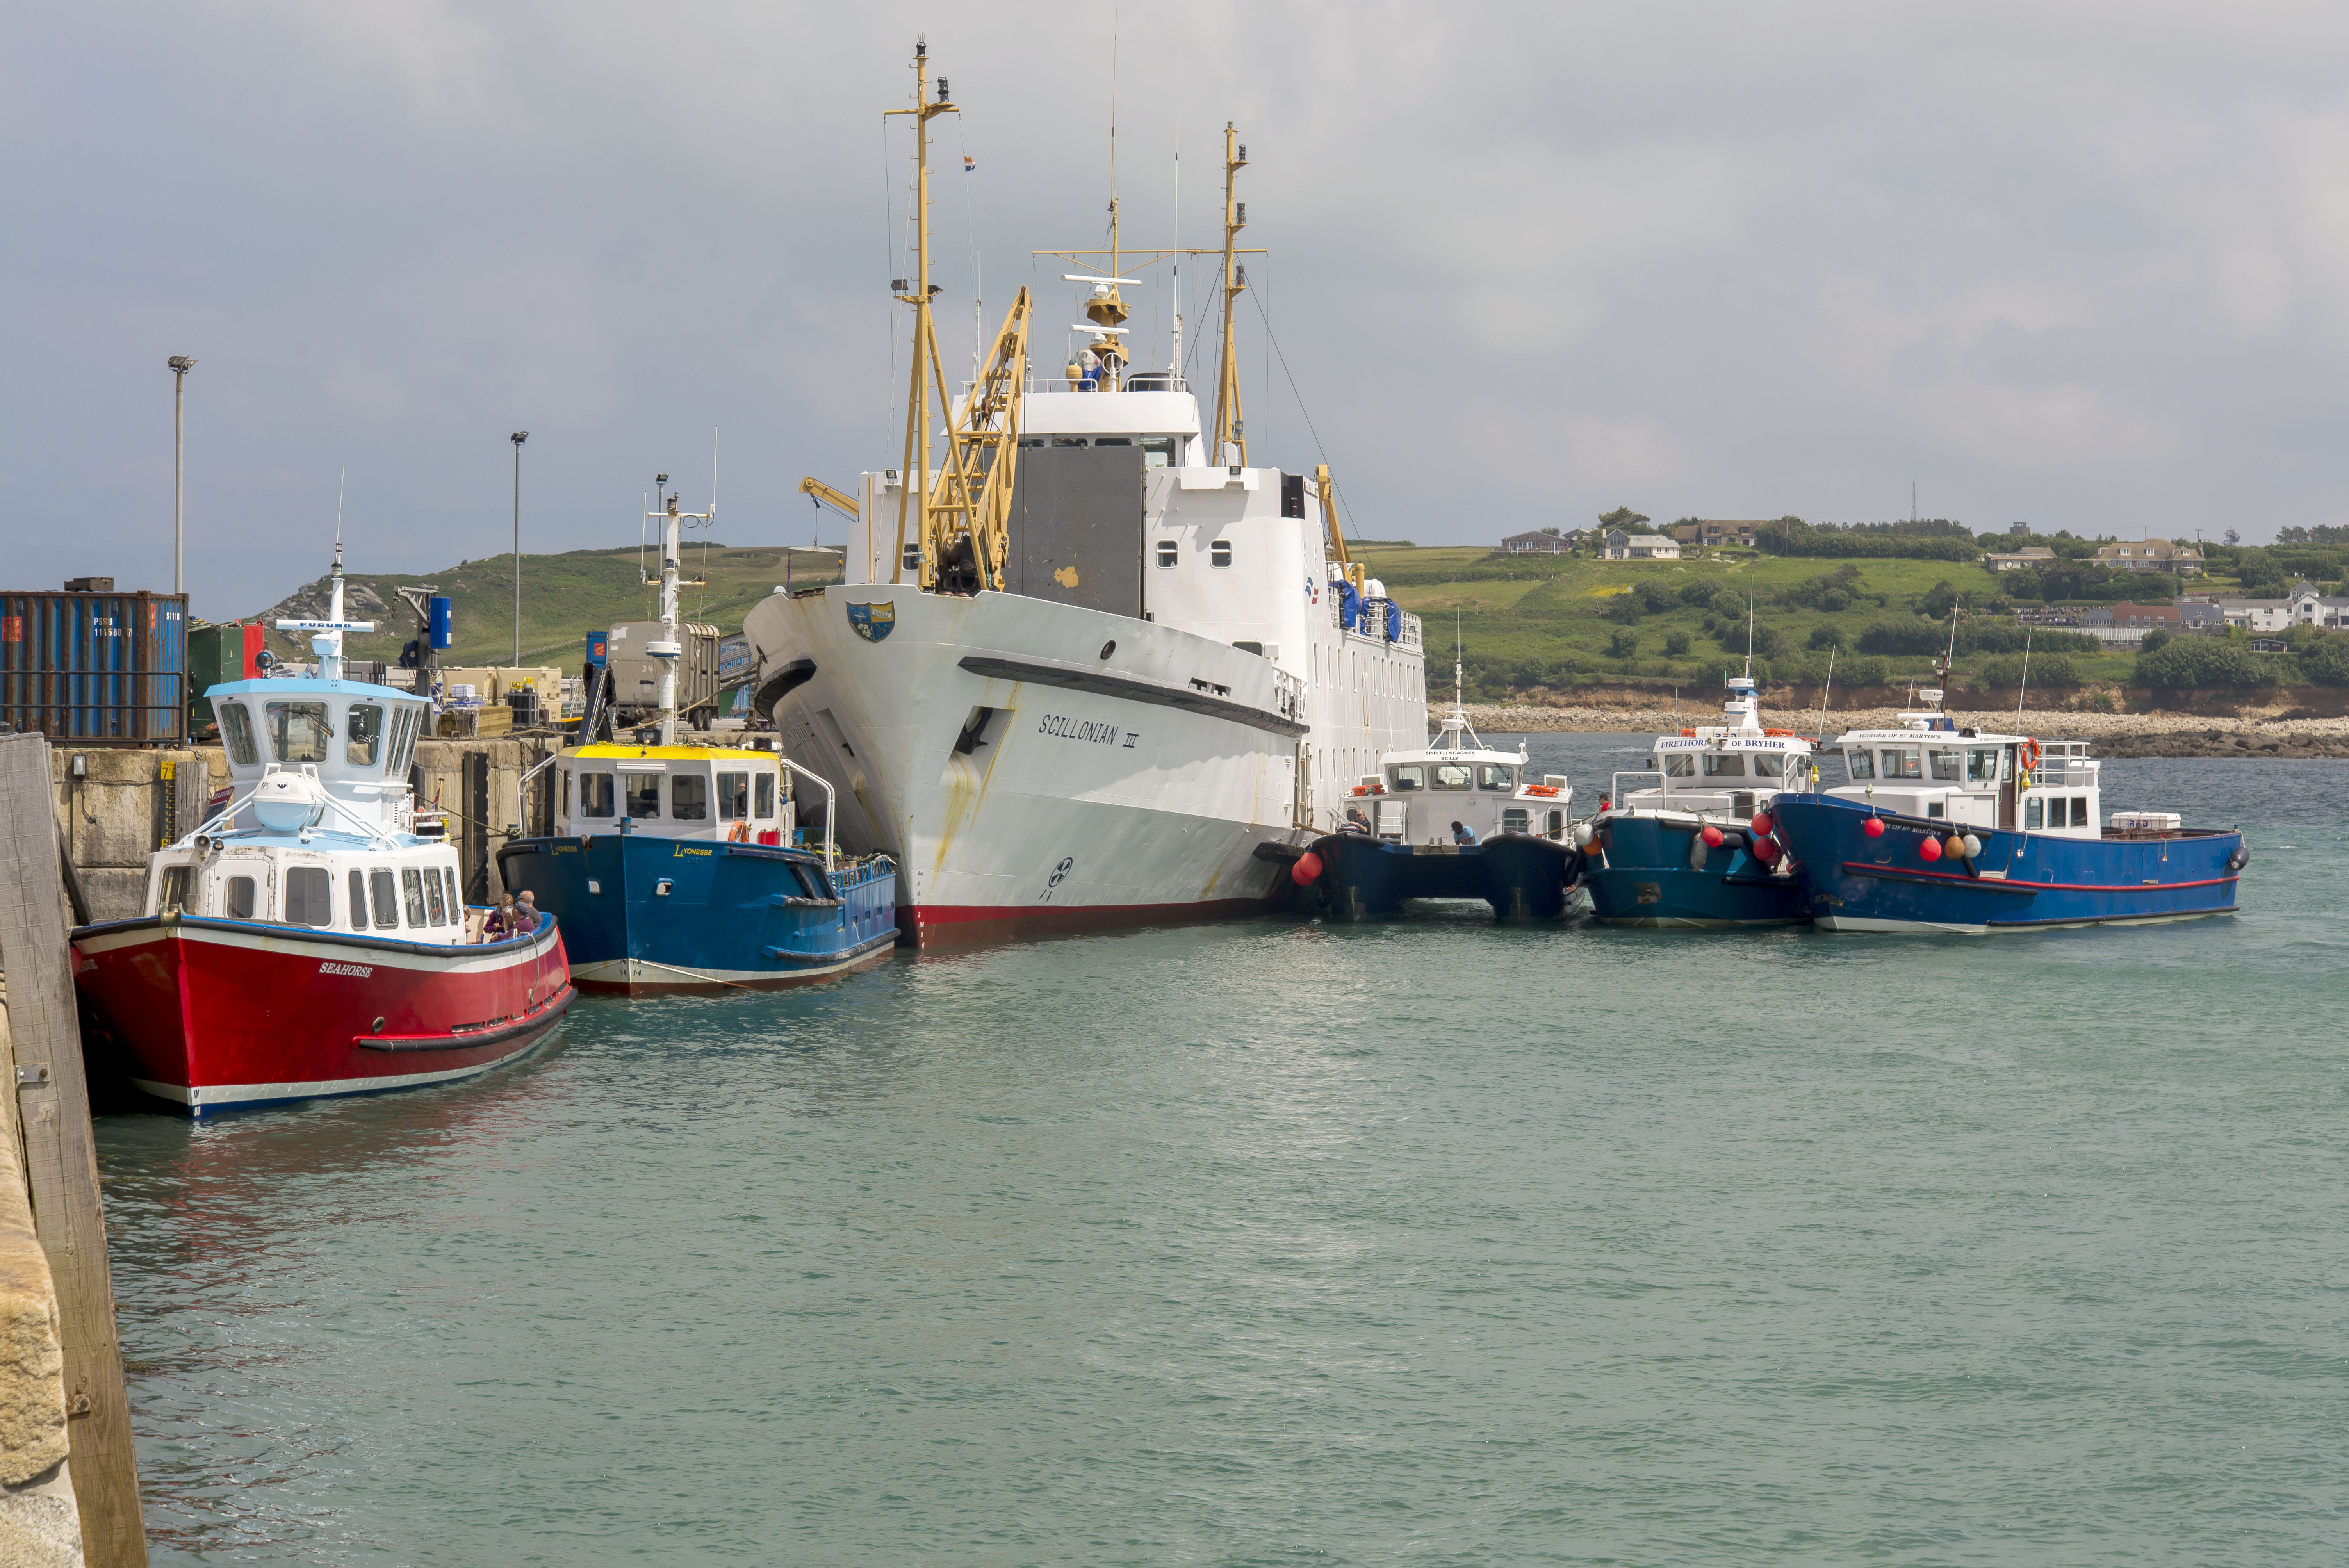 Scillonian at Hghtown, St Mary's